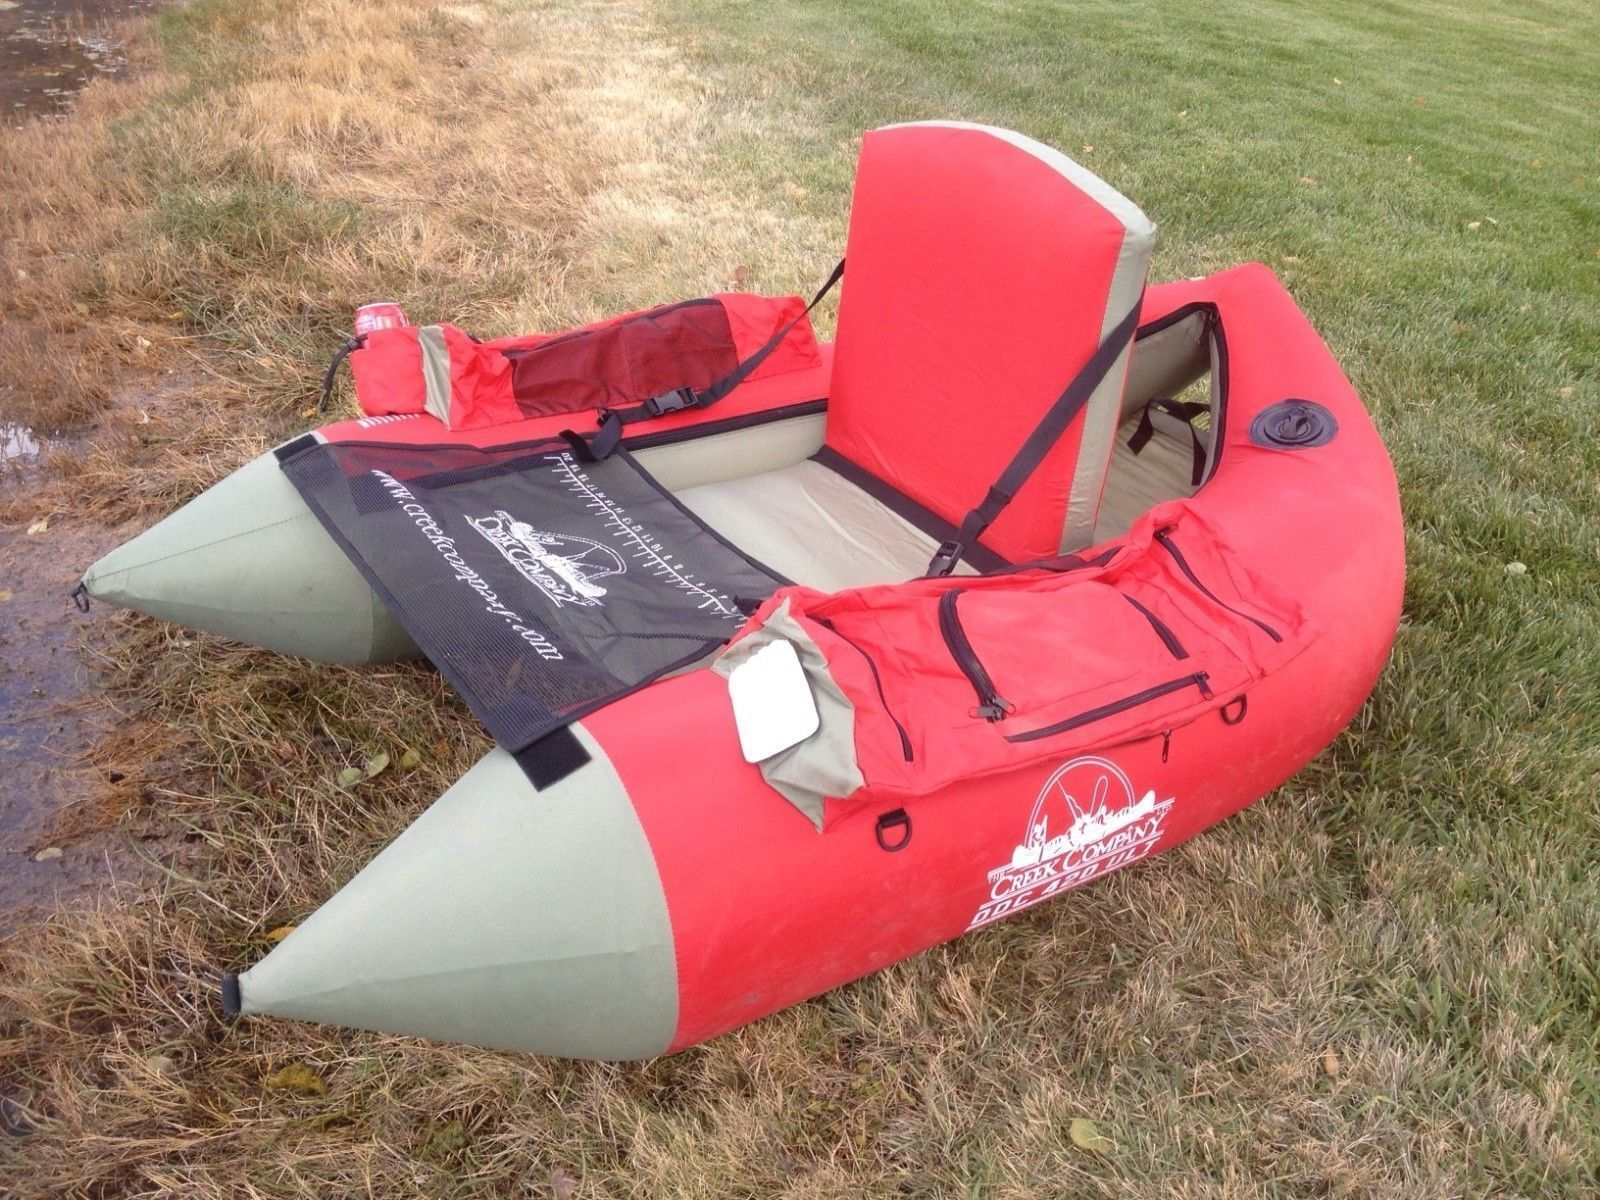 New one person  The Creek Company 420 Ultralight Boat  Model 438  w carry storage  exciting promotions